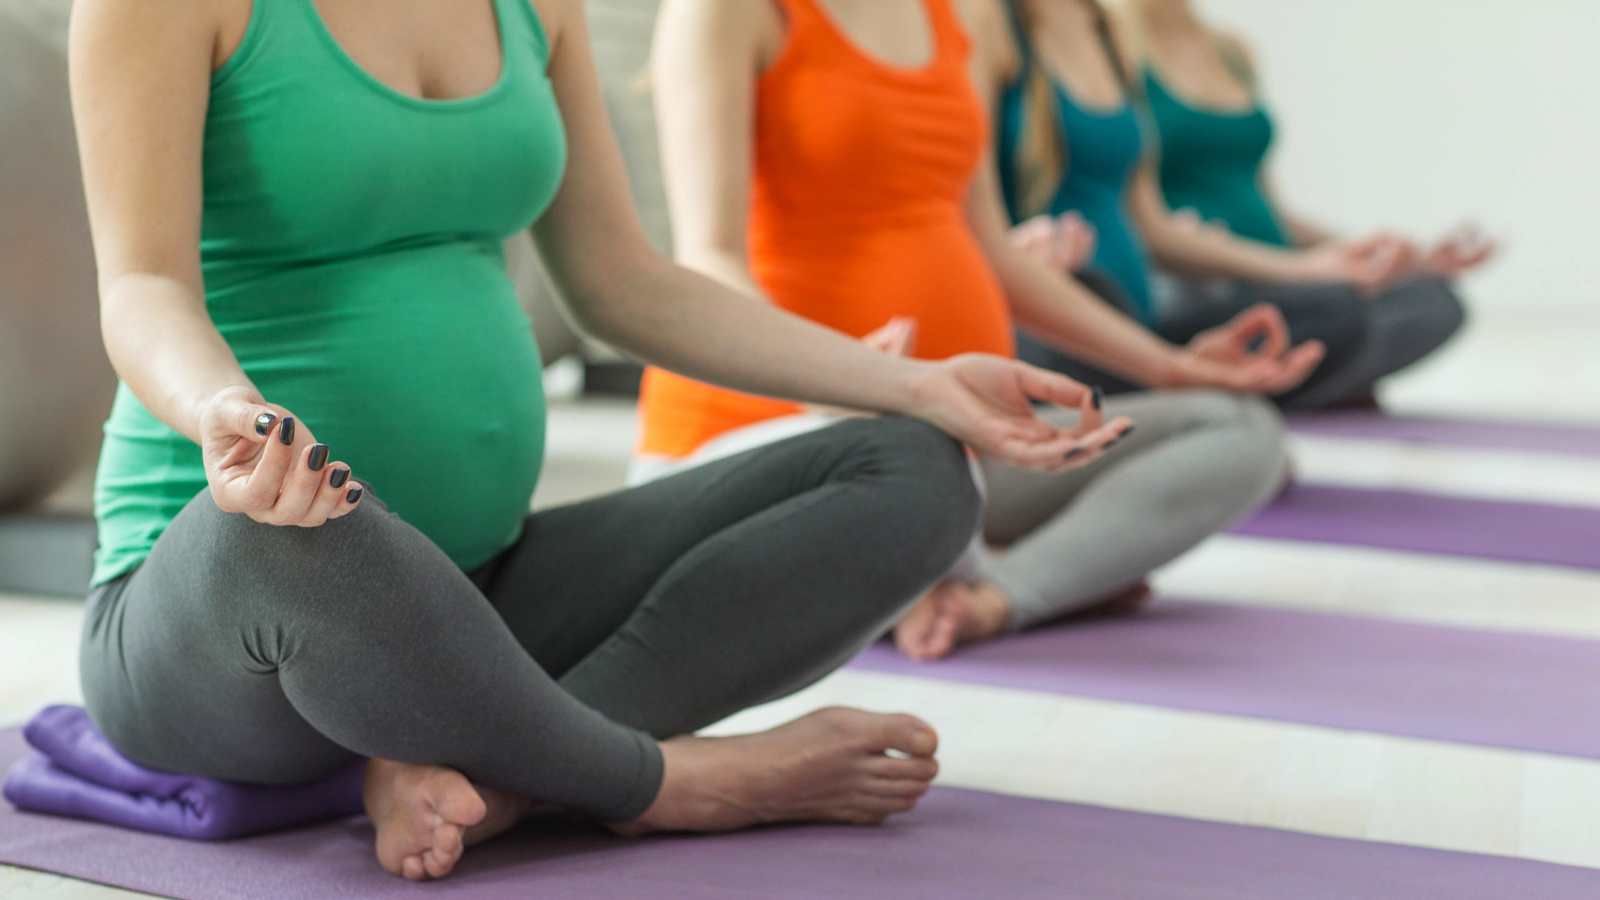 Prenatal yoga class for pregnant people practicing safely while listening to their bodies